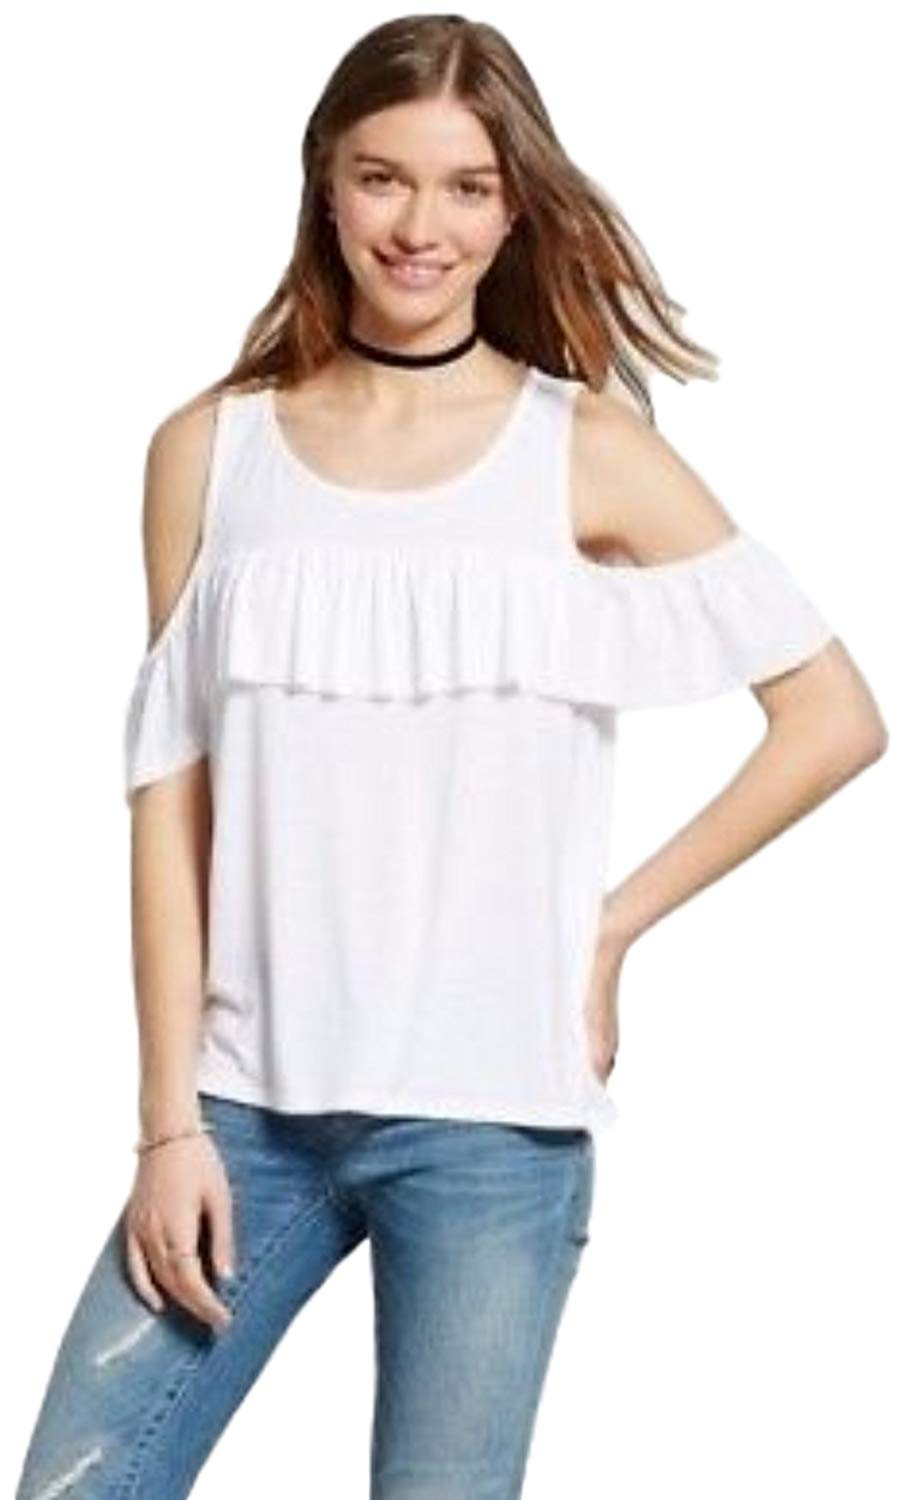 ed75572b53a49d Cheap Mossimo Women, find Mossimo Women deals on line at Alibaba.com